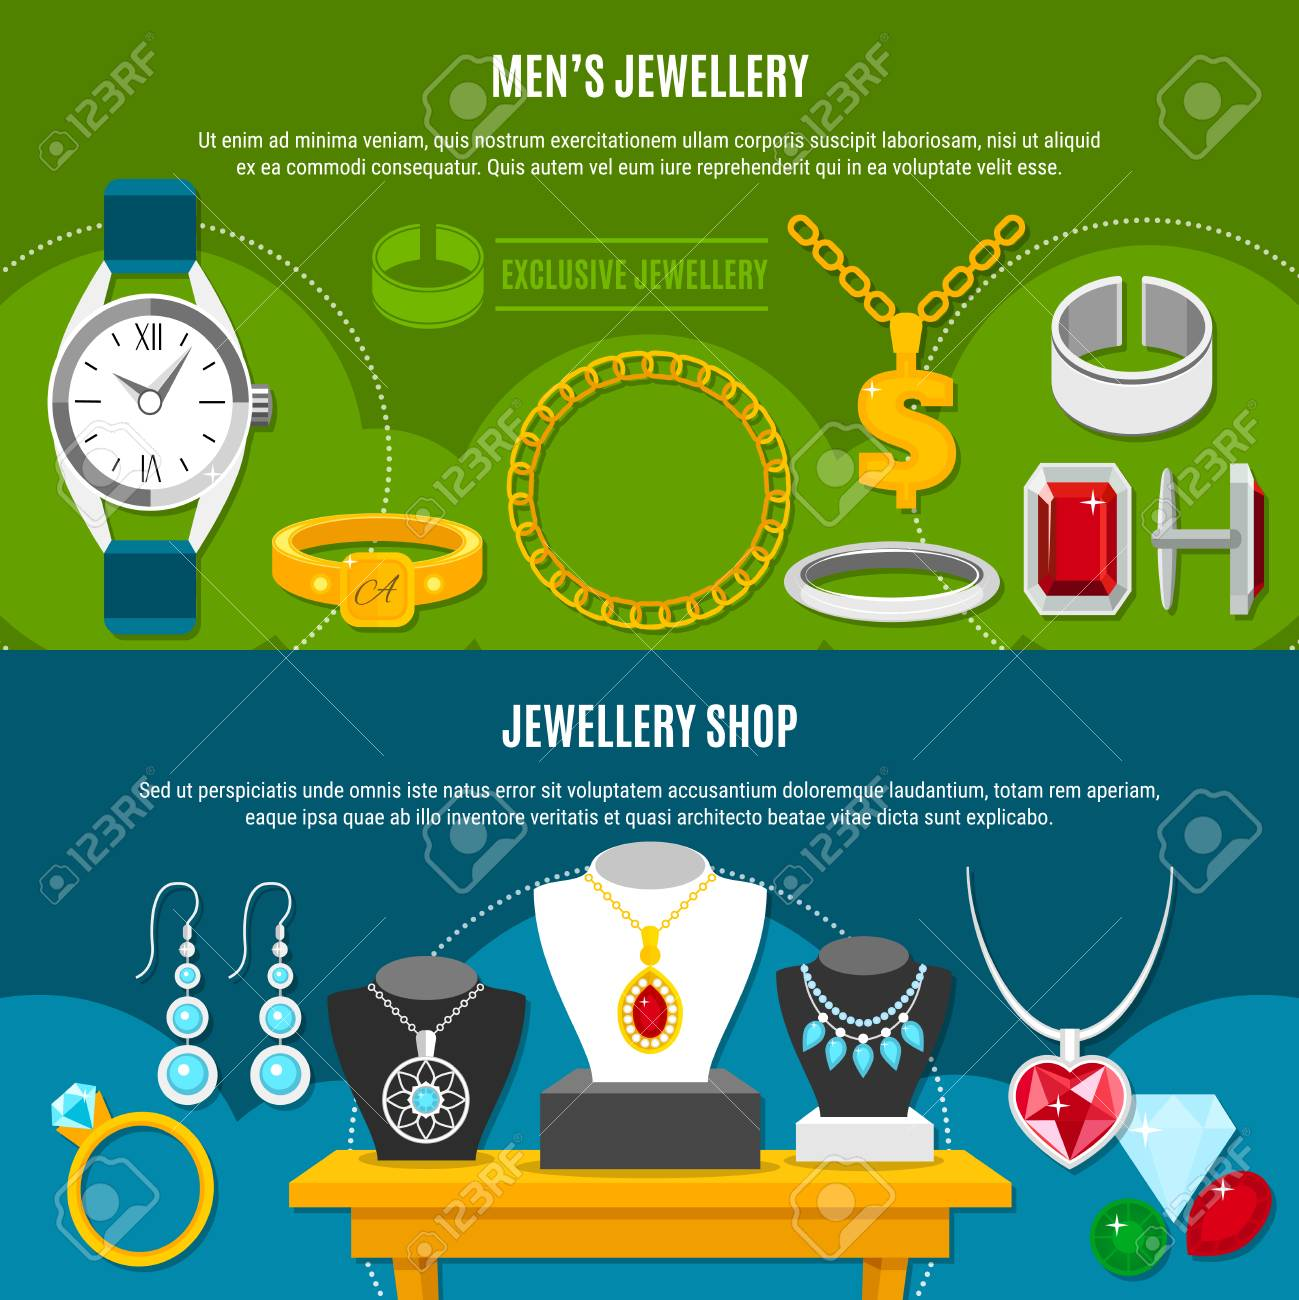 Jewelry shop horizontal banners with mens valuables, female decorations on blue and green backgrounds isolated vector illustration - 88669122